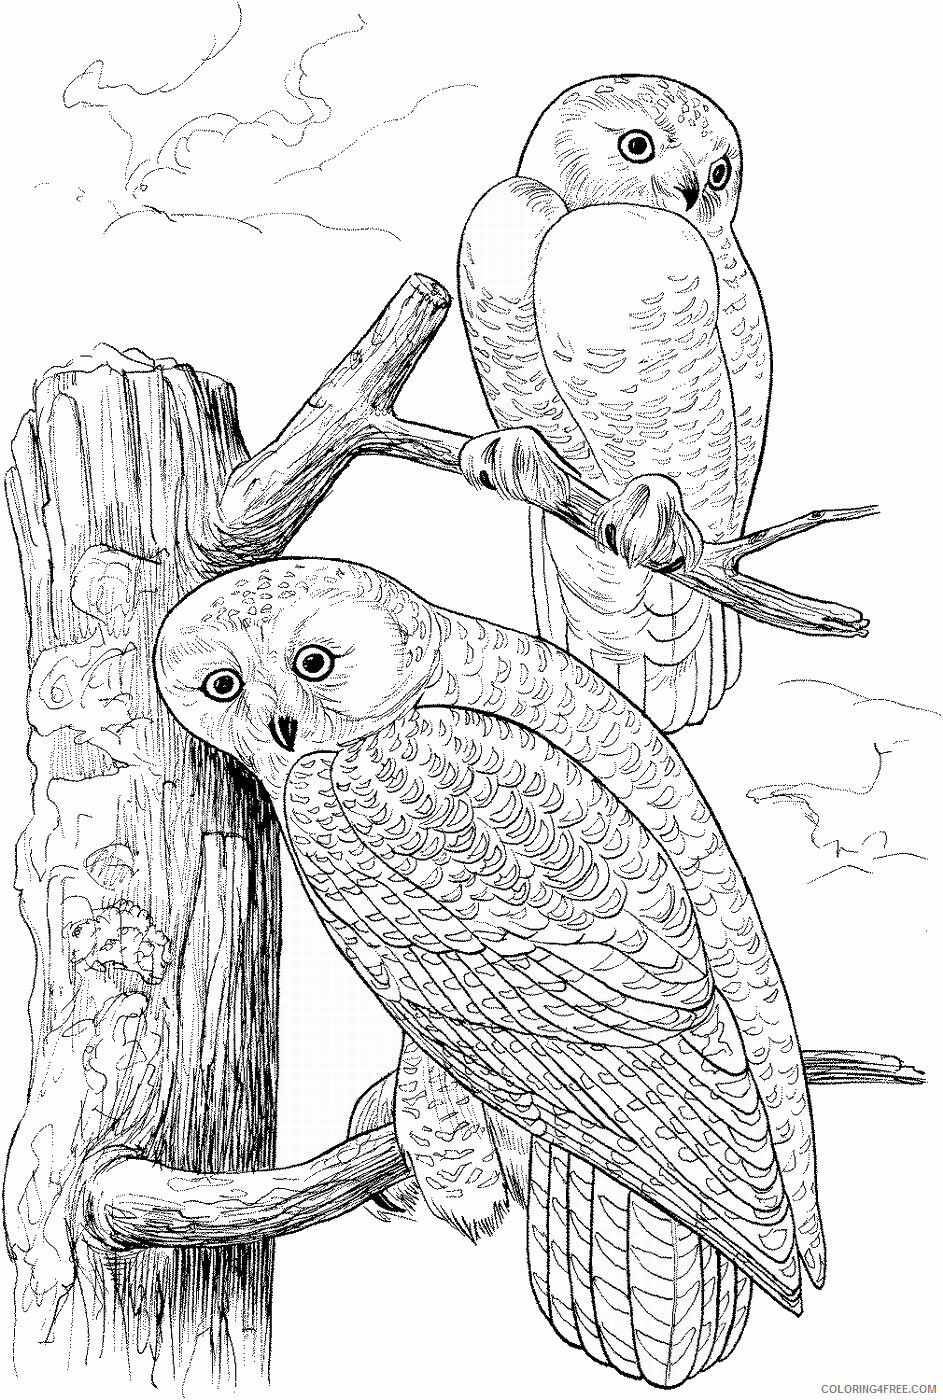 Owl Coloring Pages Animal Printable Sheets Owl_cl_11 2021 3638 Coloring4free